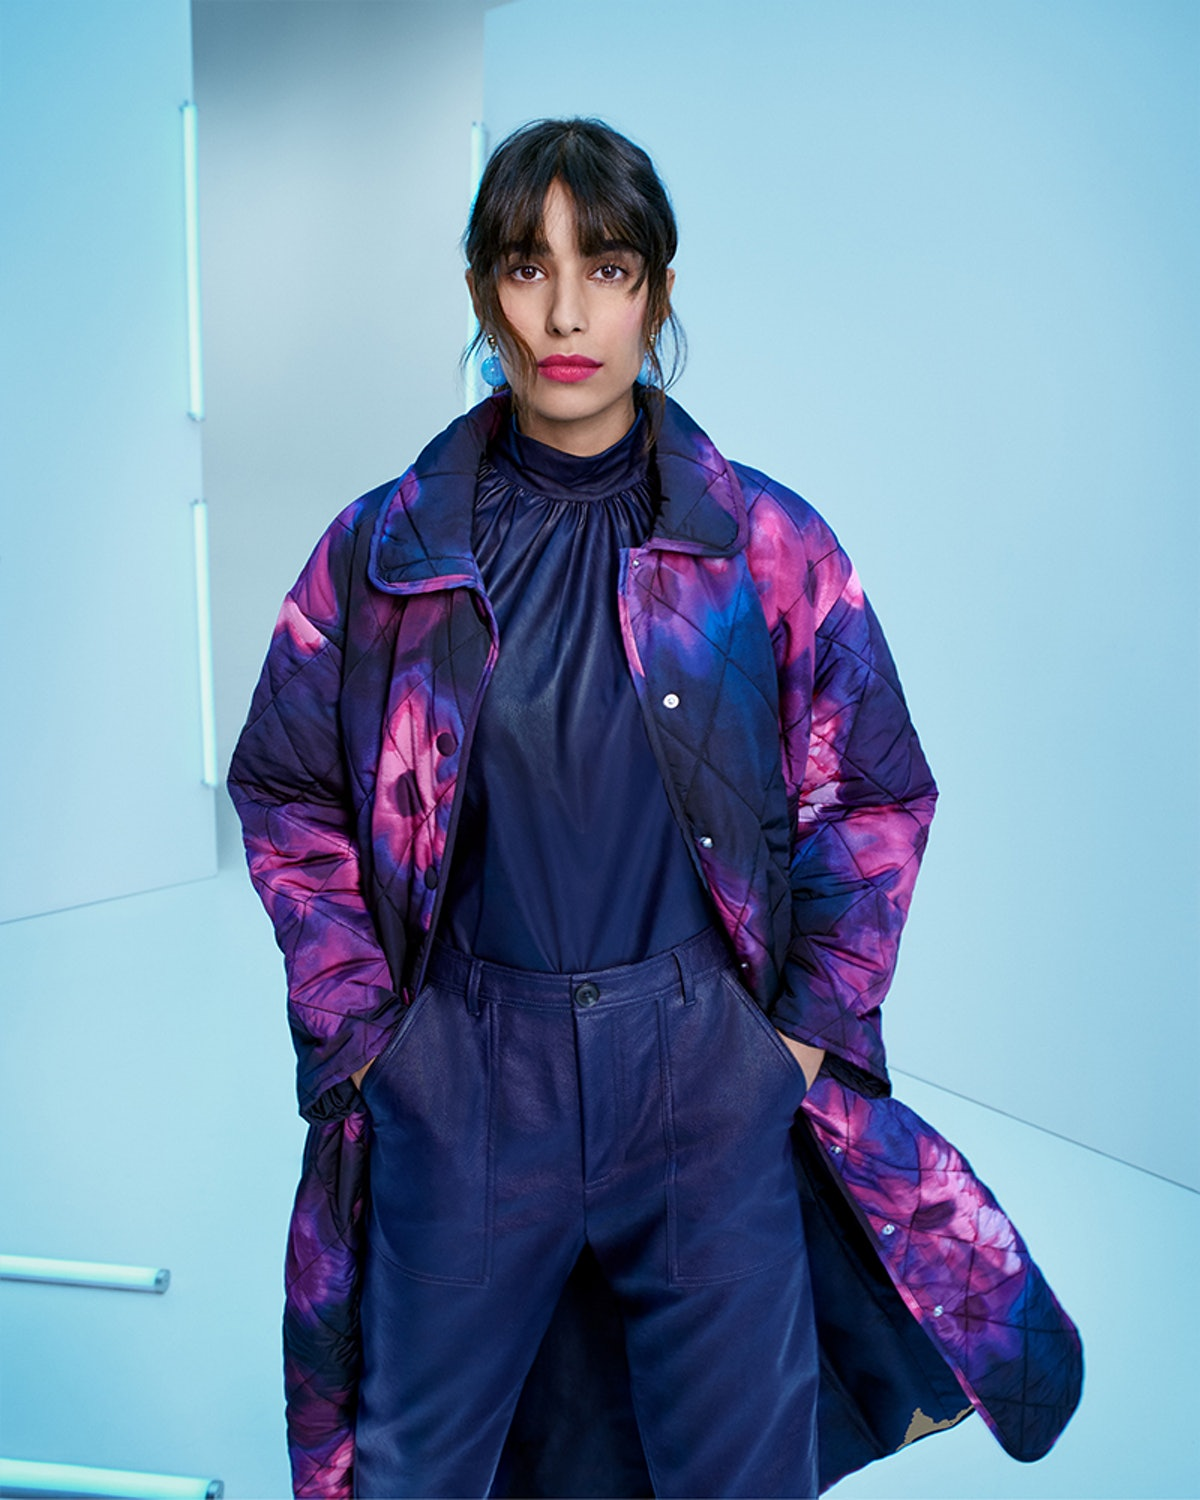 Model wears a look from Rachel Comey's line from Target's Fall Designer Collection.